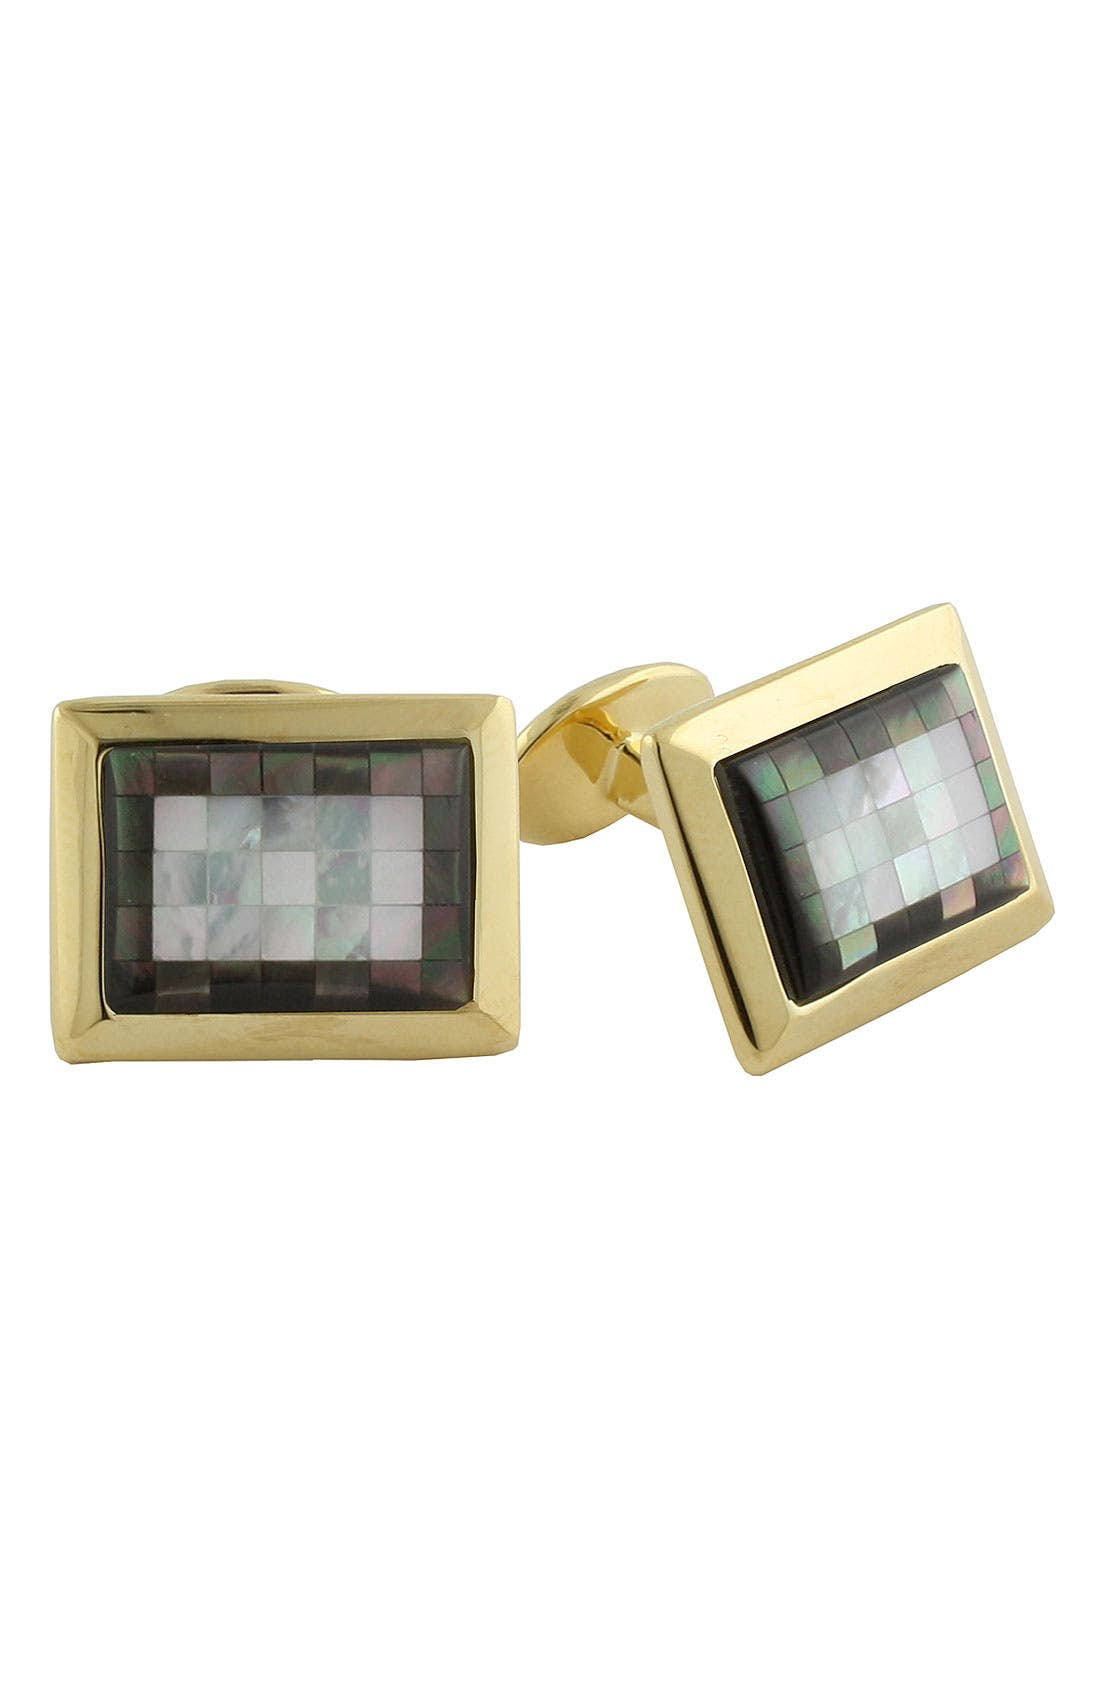 Main Image - David Donahue Rectangular Vermeil Cuff Links